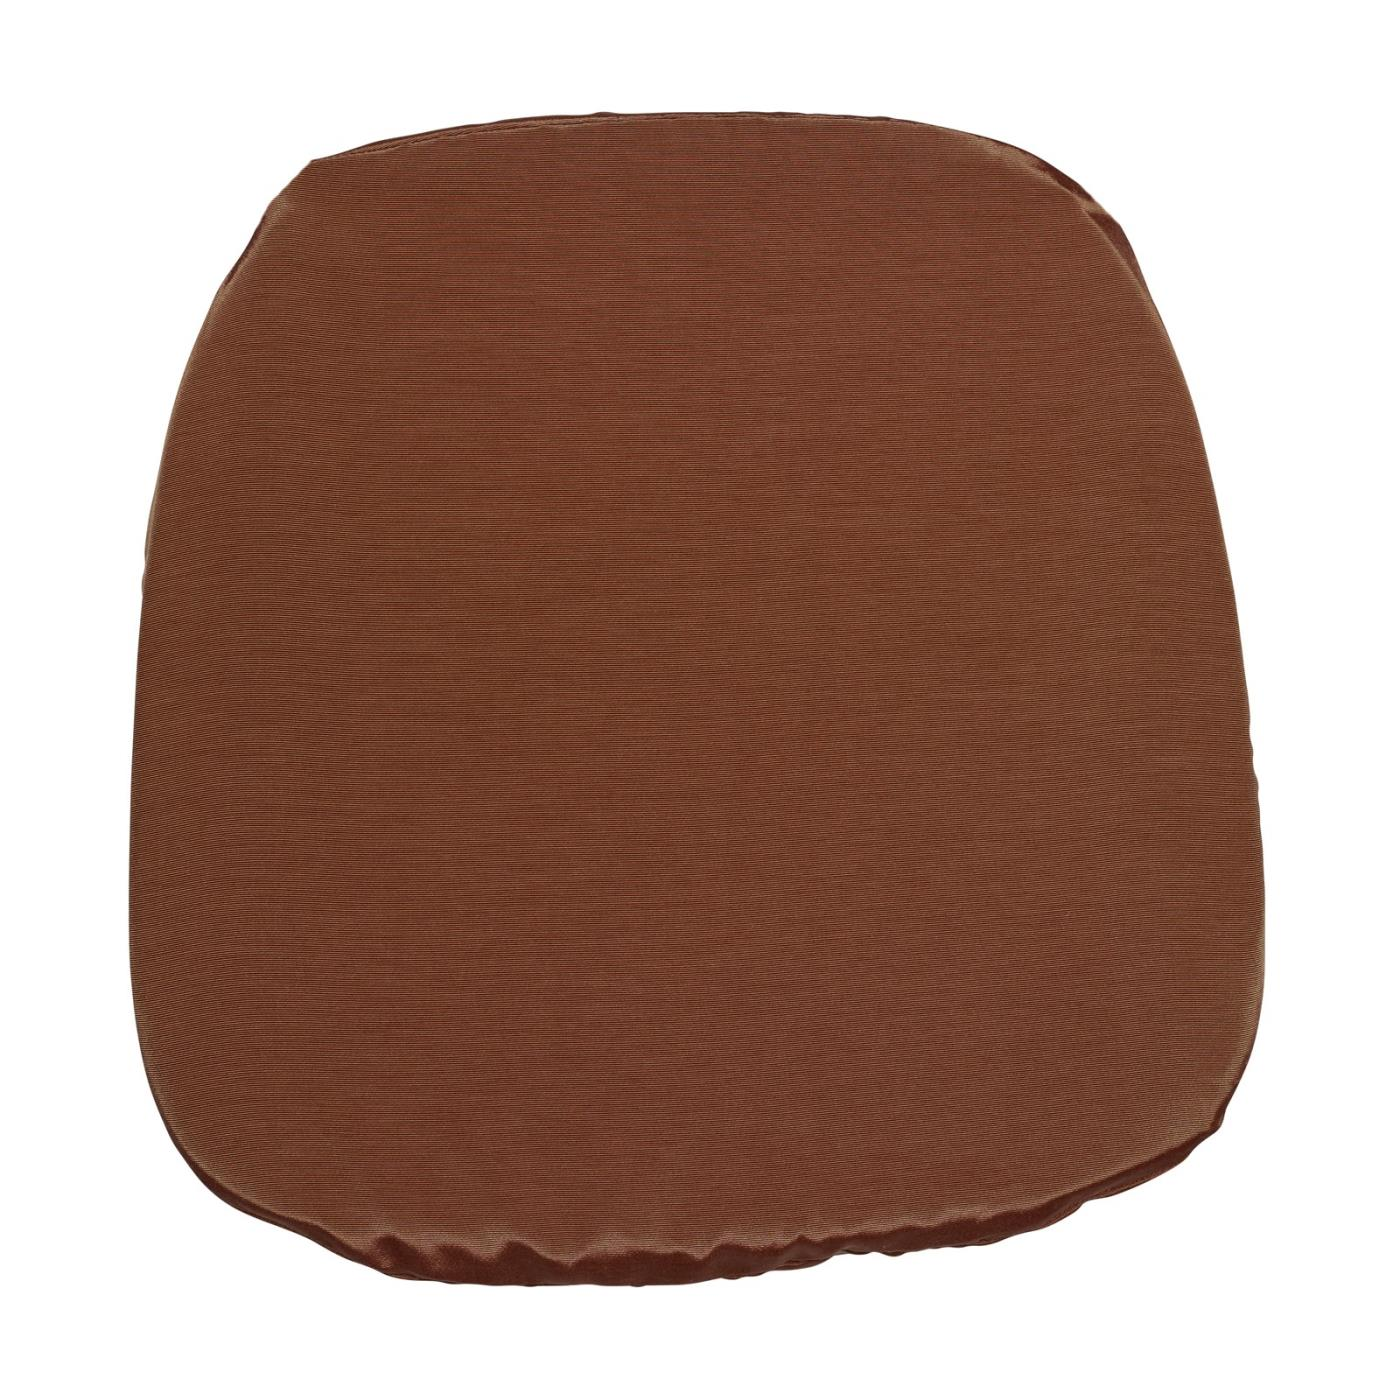 Bengaline Seat Cushion - Copper